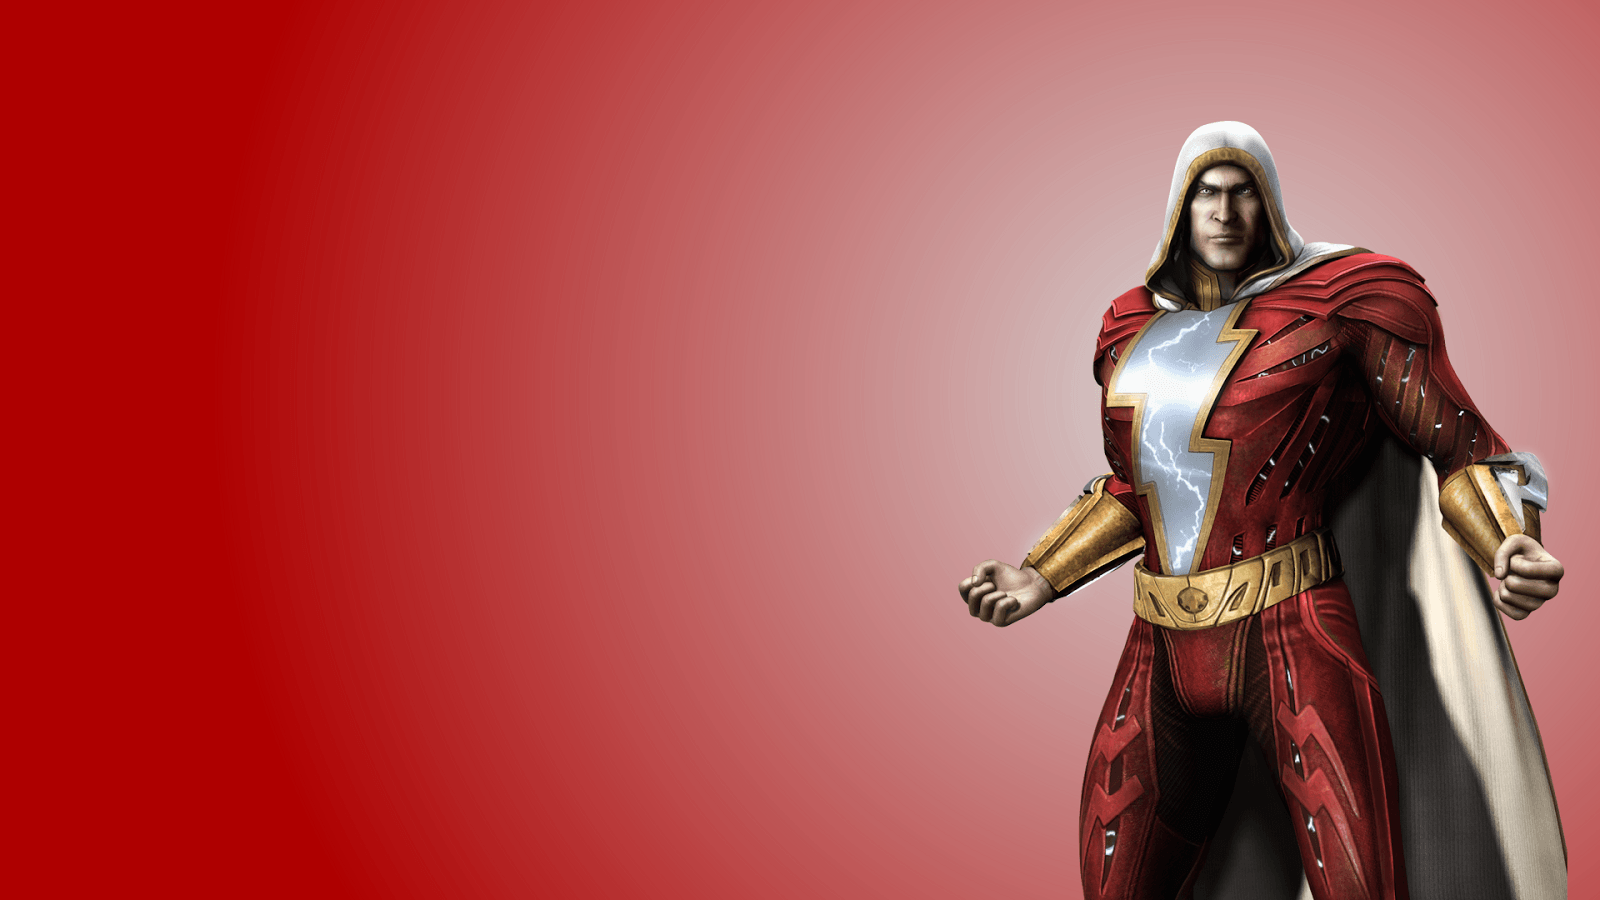 1600x900 - Shazam! Wallpapers 1